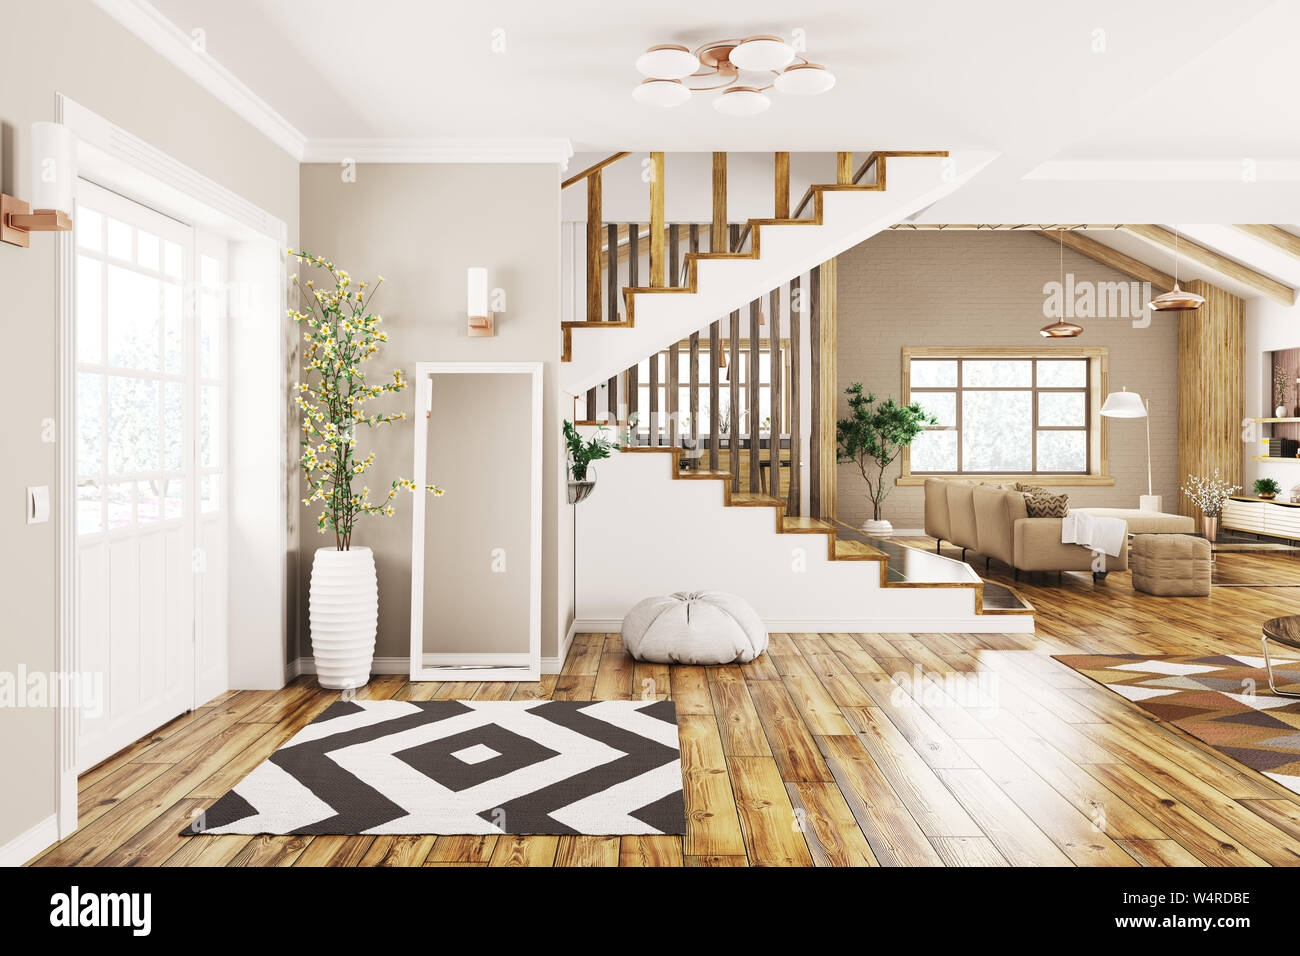 Modern Interior Design Of House Hall Living Room With Staircase | Live Home 3D Stairs | Chief Architect | Building | Floor Plan | Stair Treads | 3D Pro